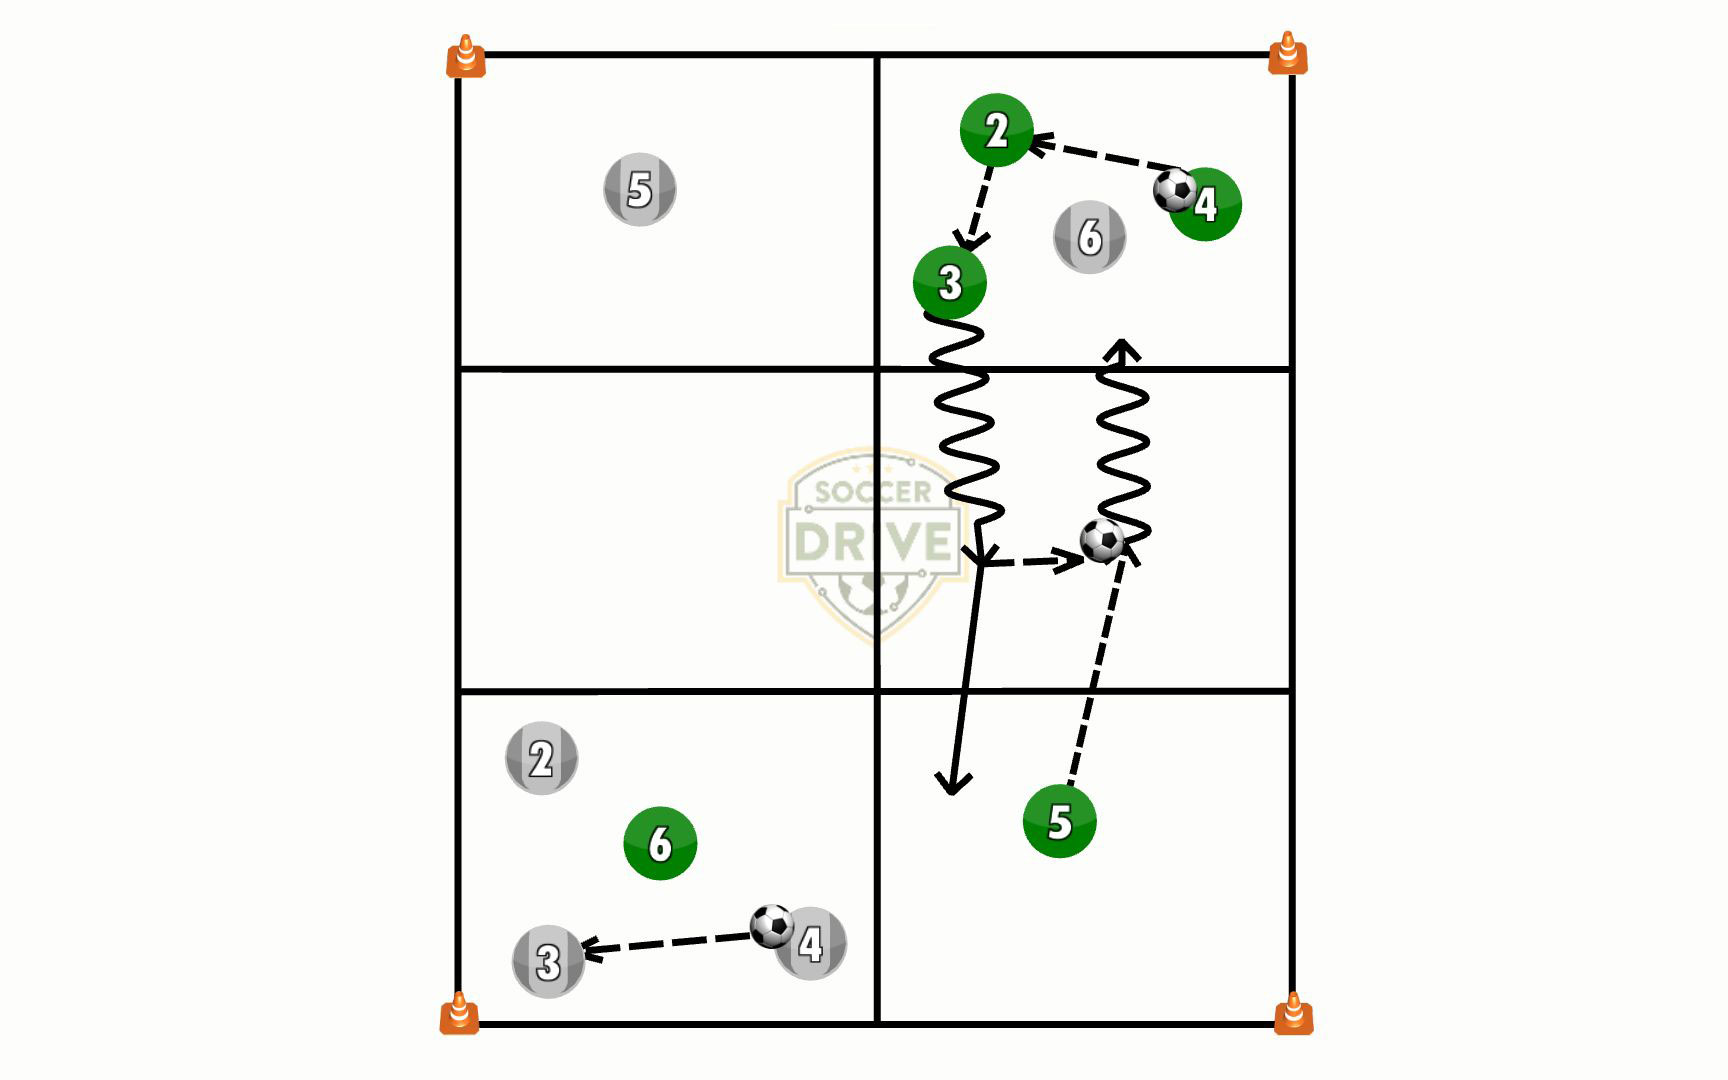 Dribble Into Space Soccer Activity